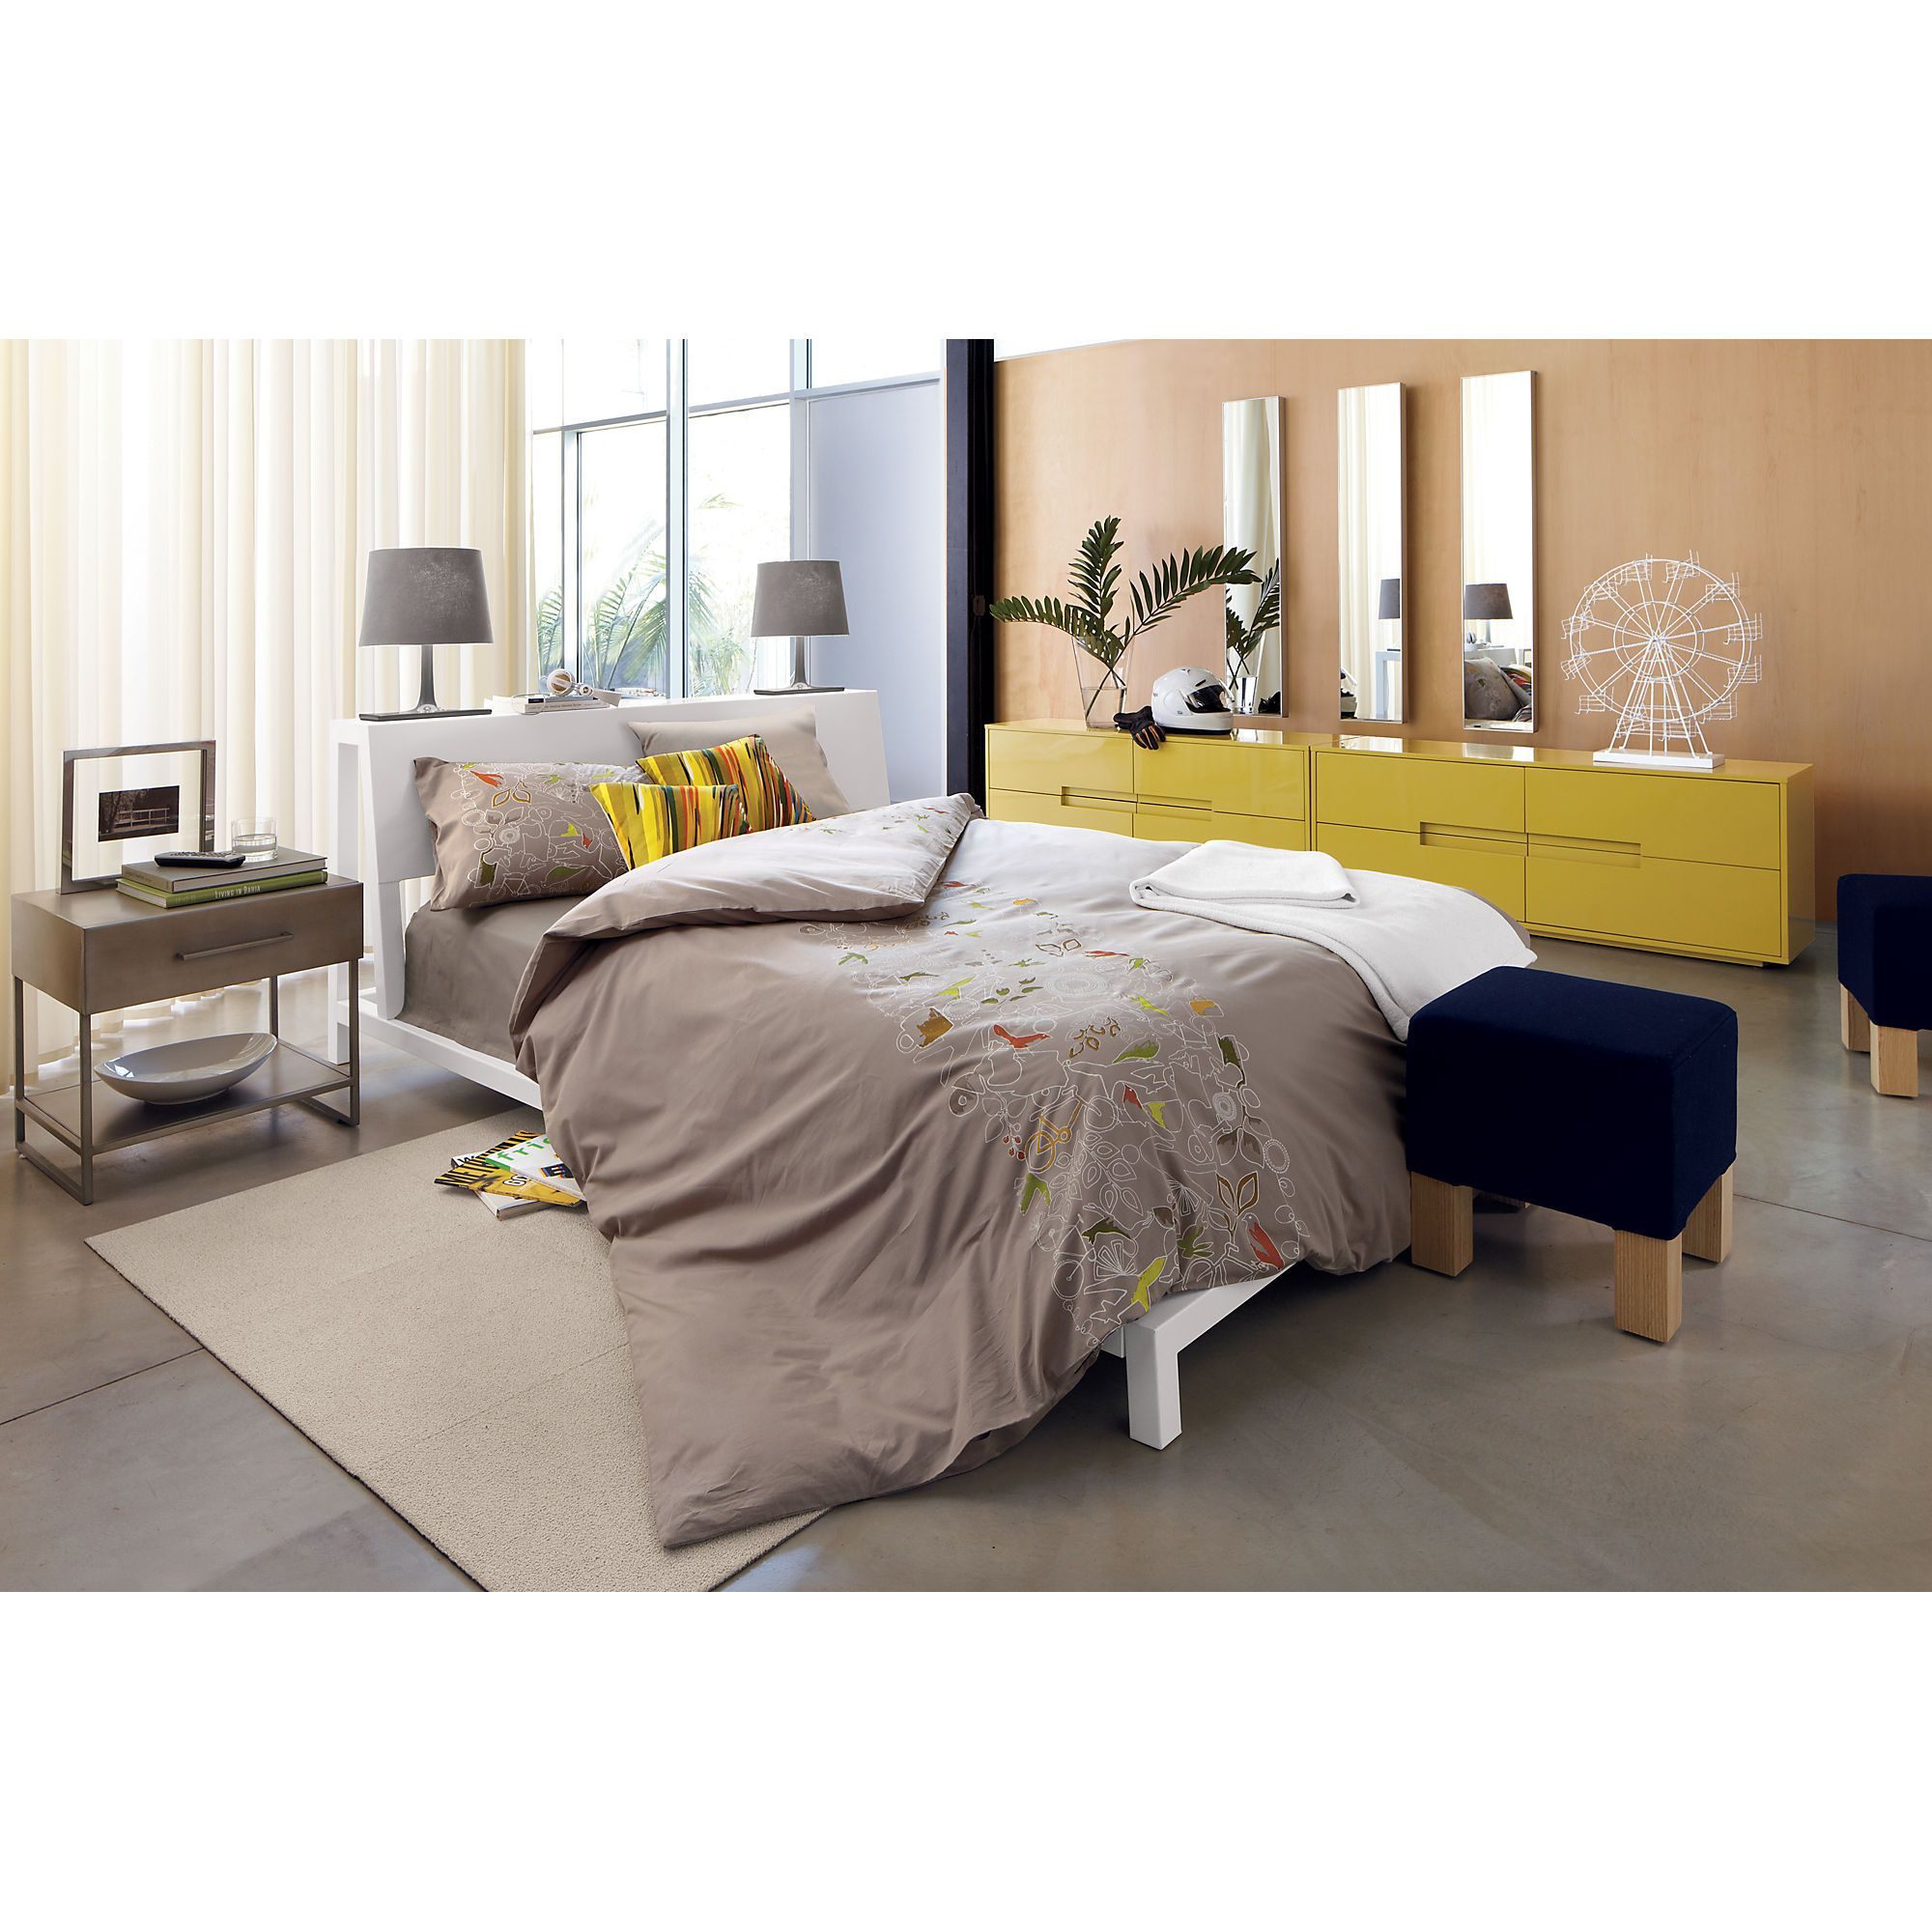 Best Latitude Grellow Low Dresser In Bedroom Furniture Cb2 400 x 300